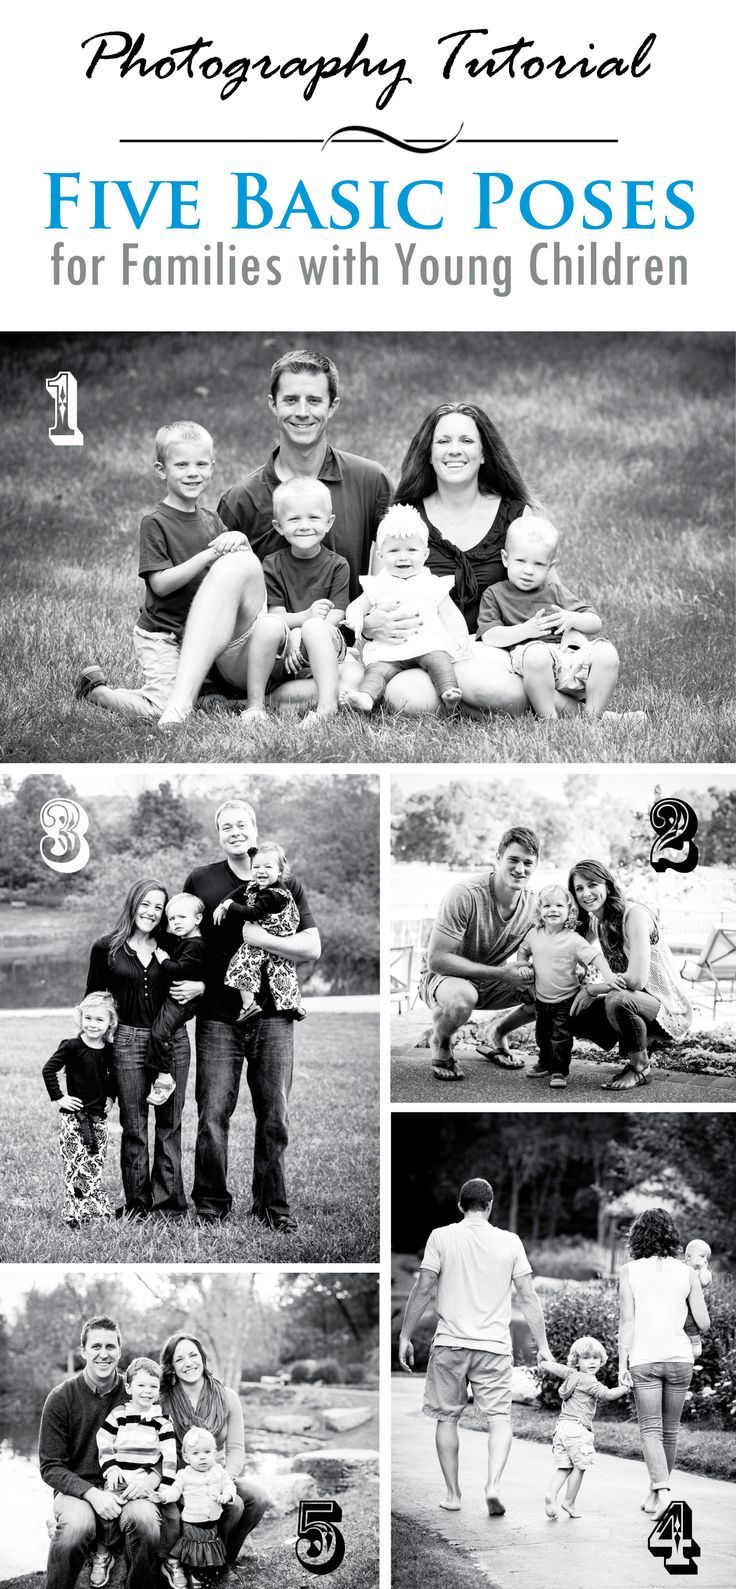 5 Basic Photography Poses for Families with YoungChildren